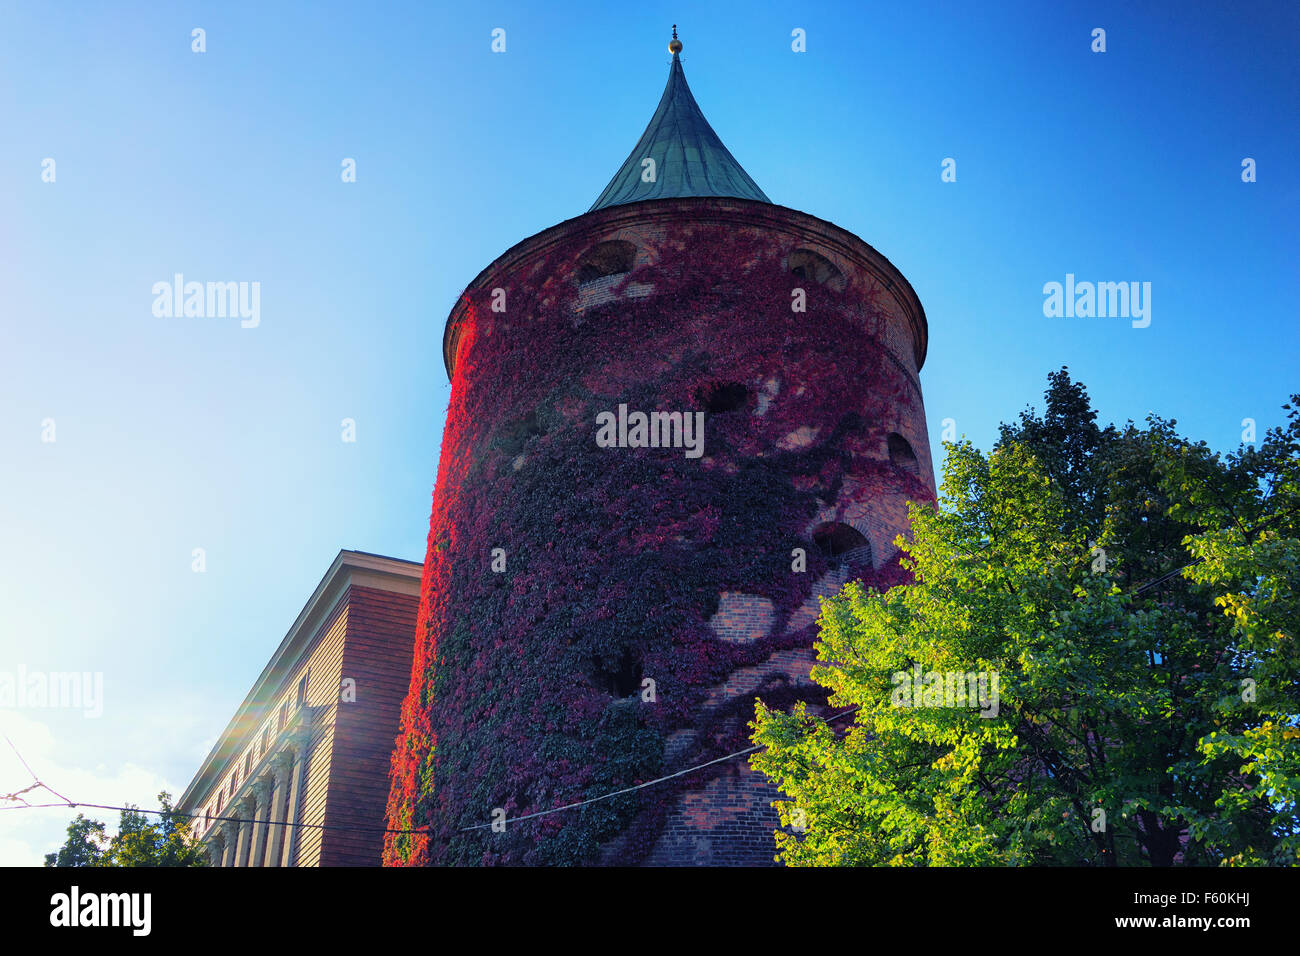 Powder Tower in the old town of Riga wrapped red curly custom against the blue sky and green tree - Stock Image